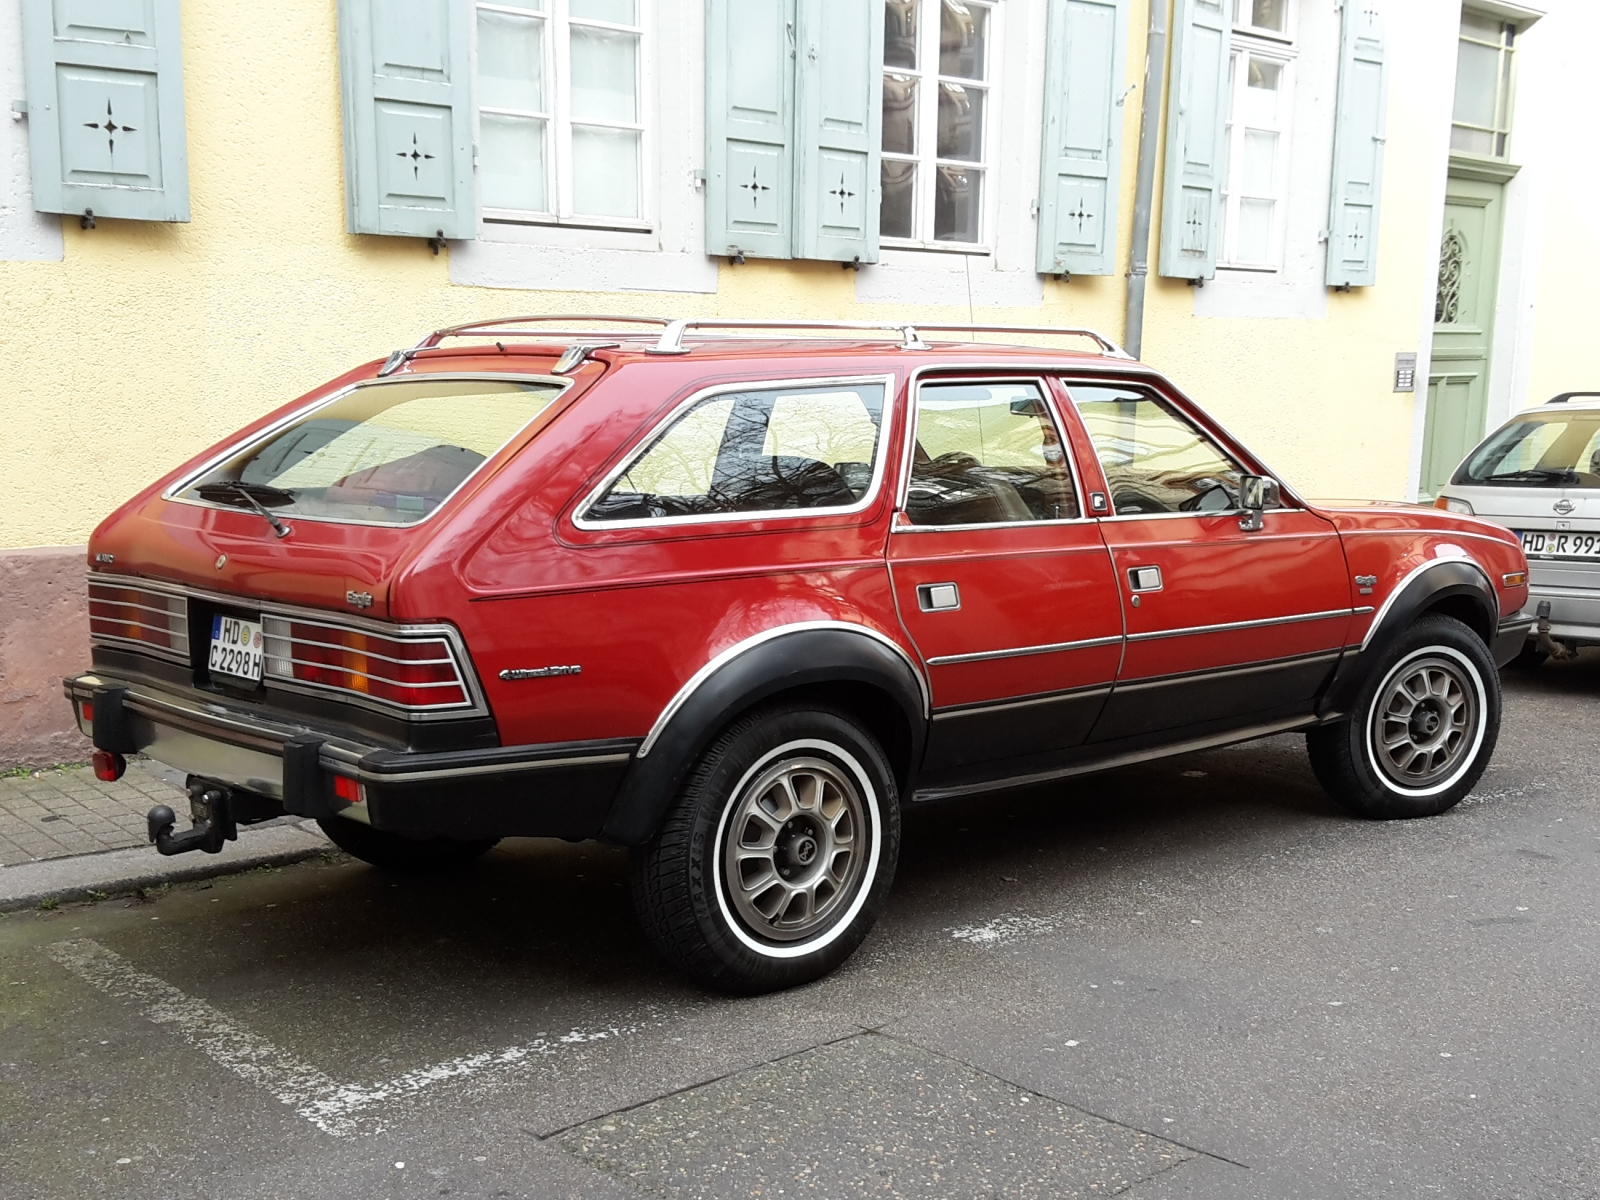 AMC Eagle 4WD